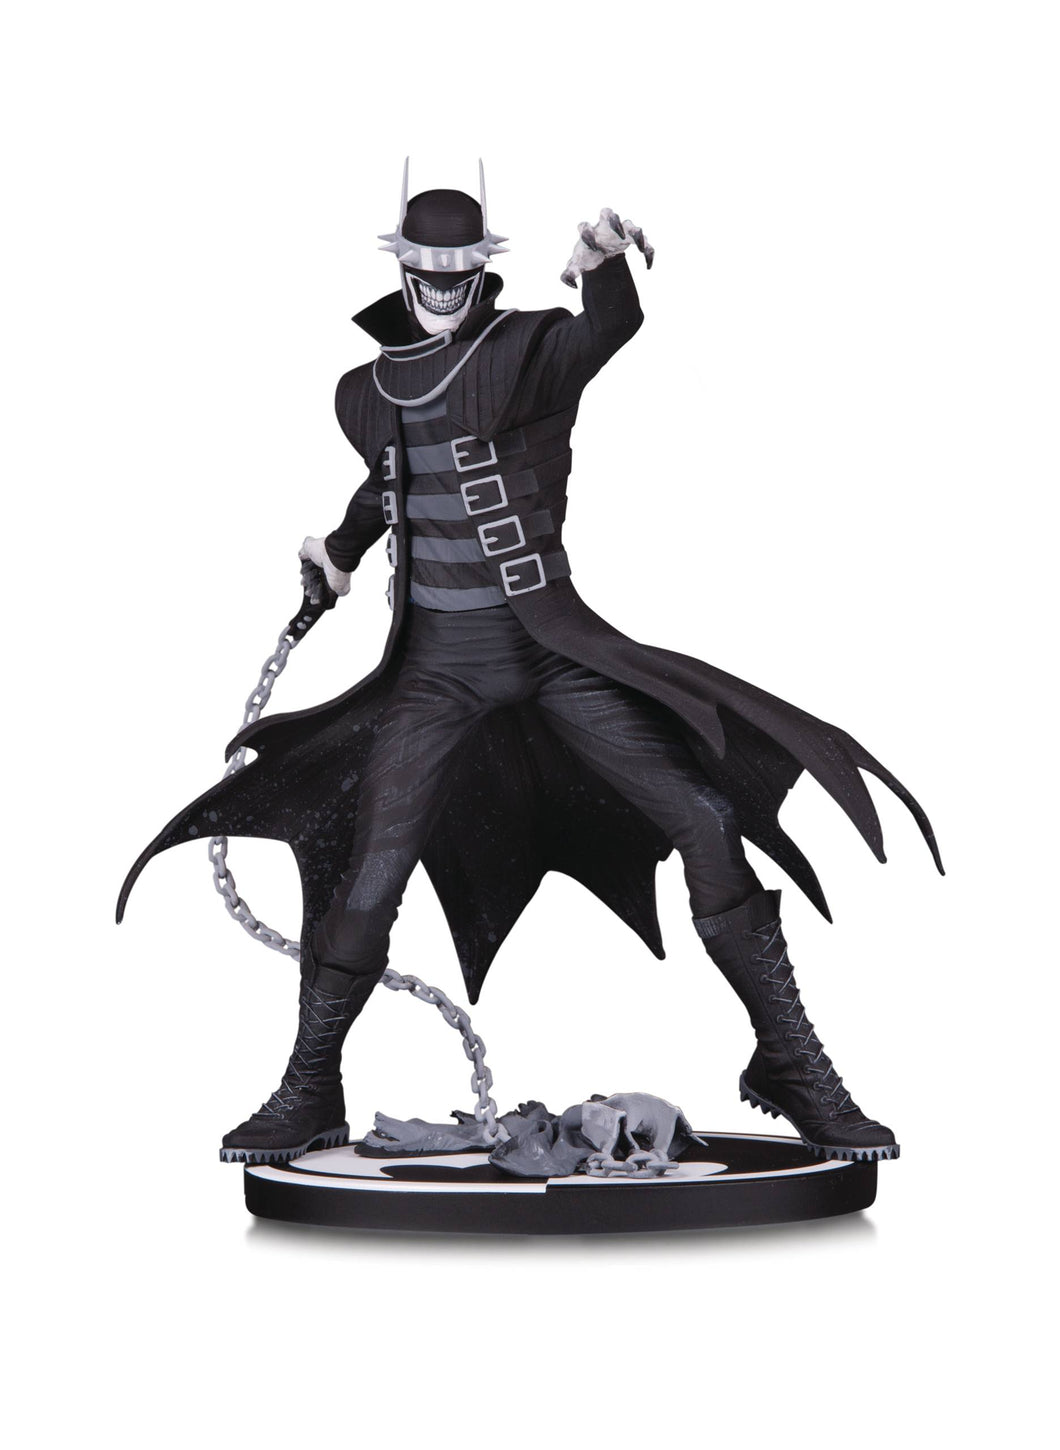 BATMAN BLACK & WHITE THE BATMAN WHO LAUGHS STATUE FOC 06/04 (ADVANCE ORDER)